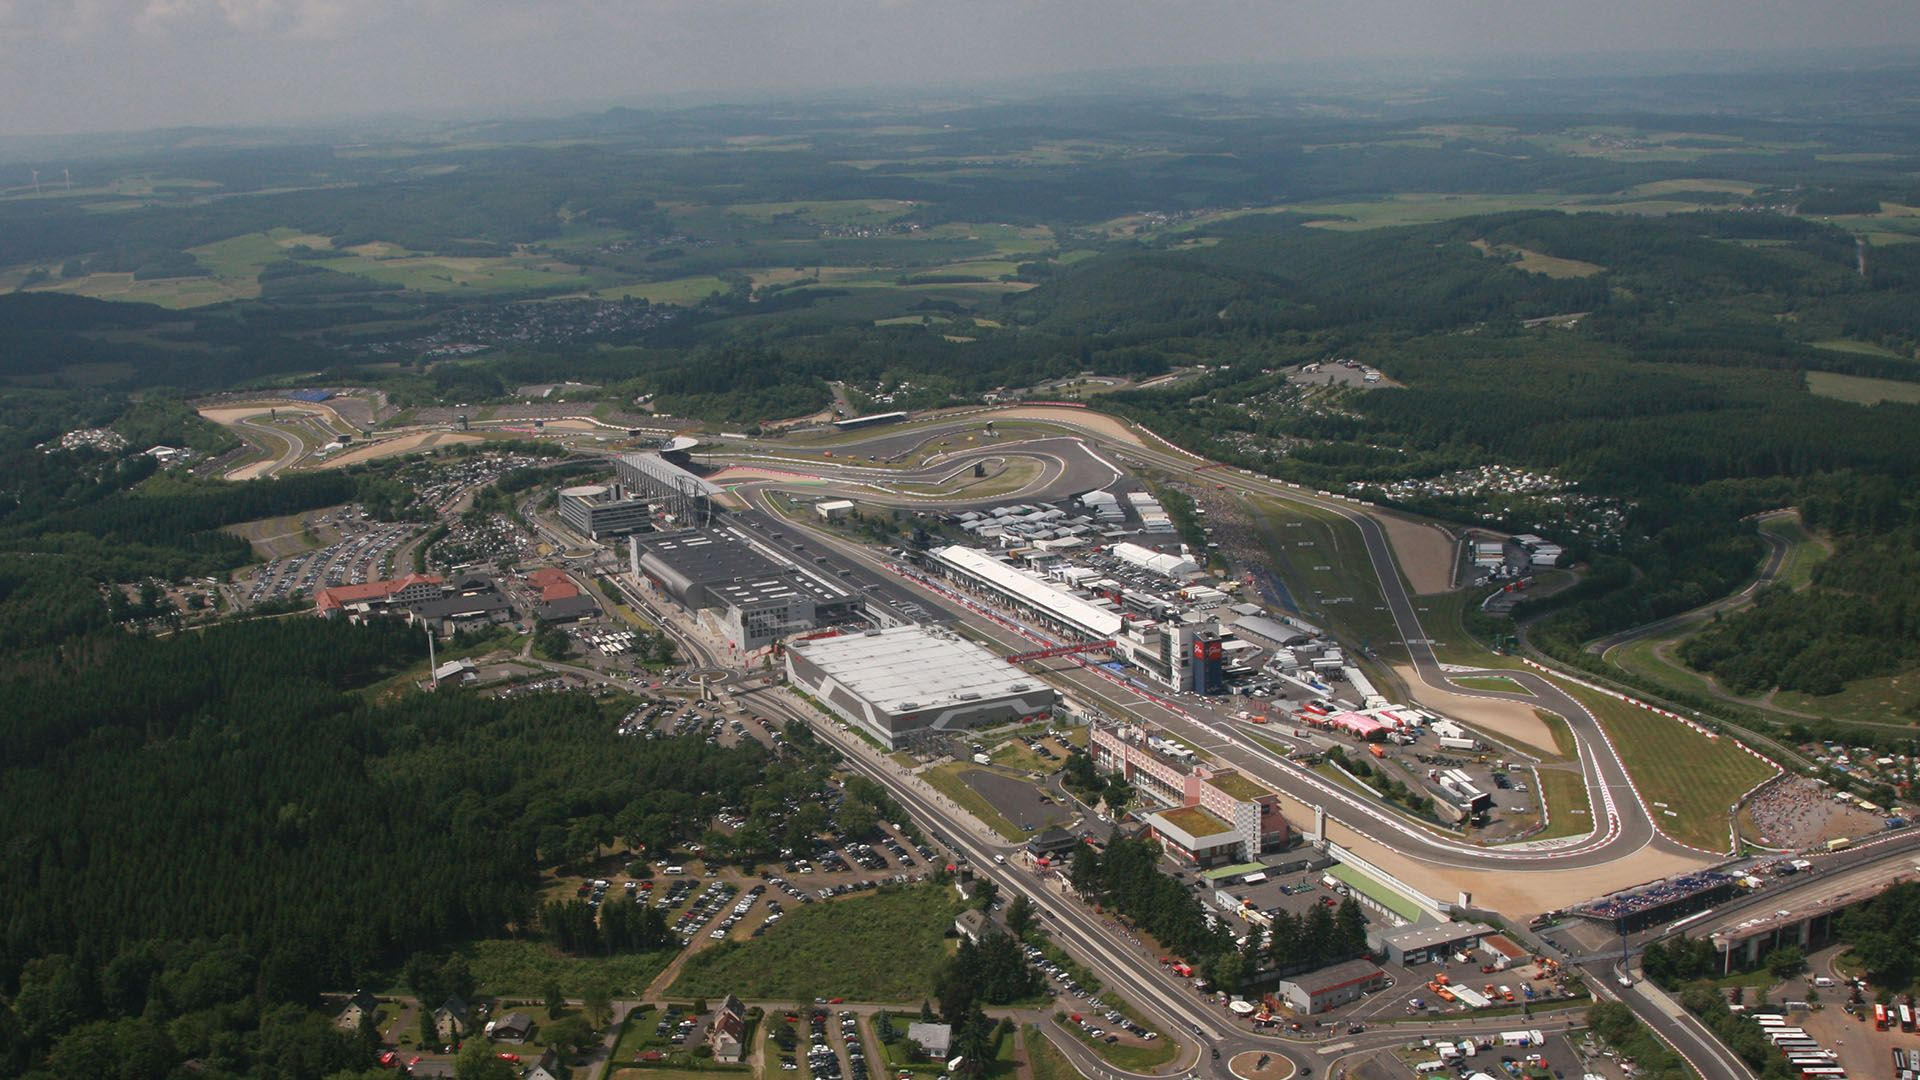 Nurburgring All You Need To Know About The German Circuit Formula 1 German Grand Prix Formula 1 Circuit